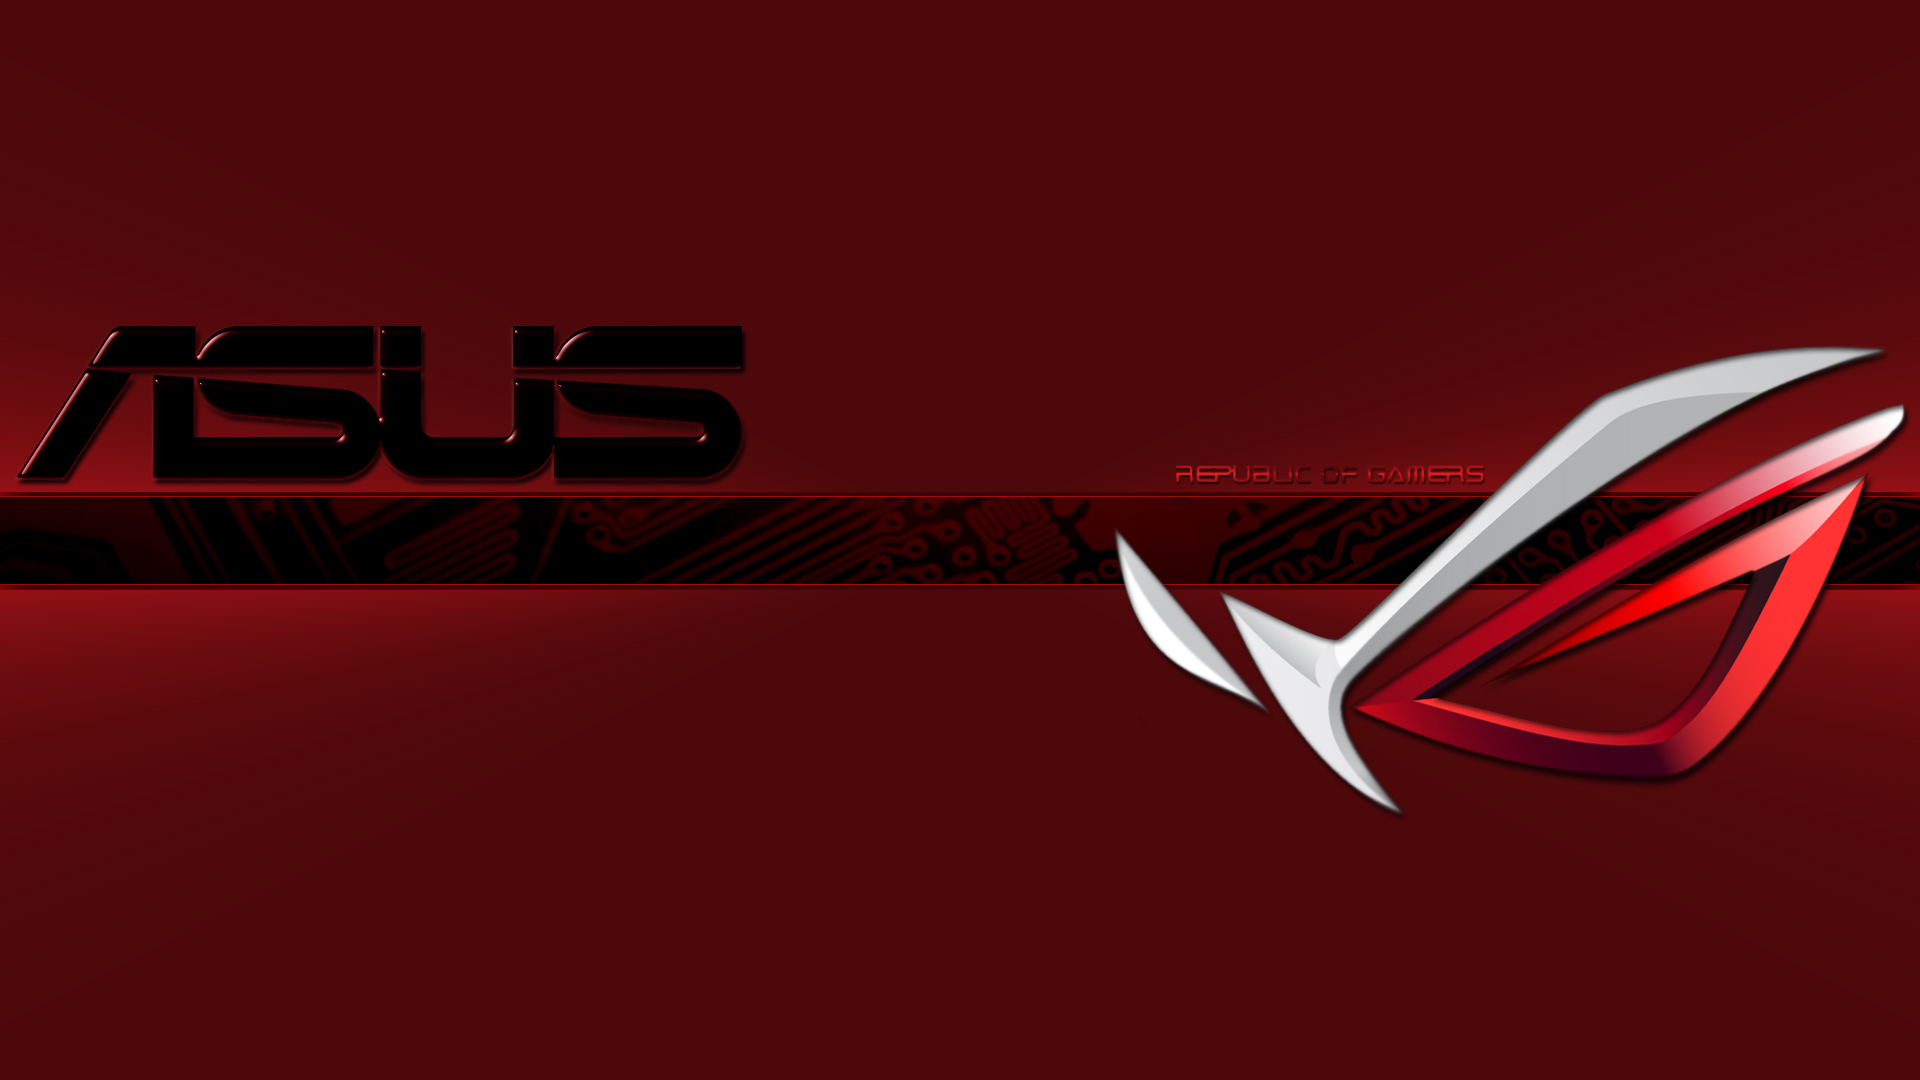 wallpaper asus asus zeus wallpaper hd set of laptops kawaii wallpaper 1920x1080